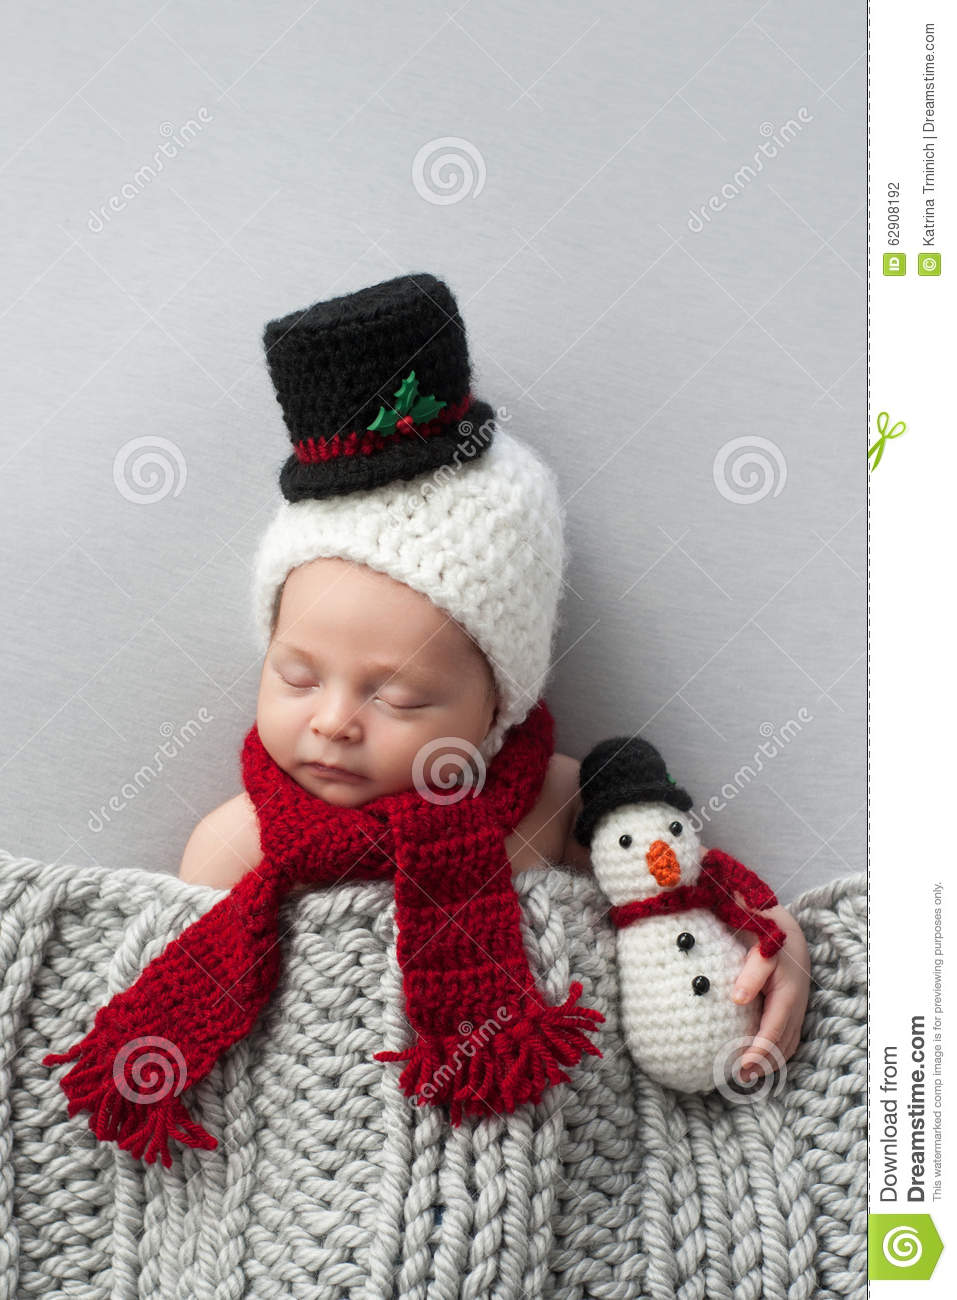 Newborn Baby Boy With Snowman Hat And Plush Toy Stock